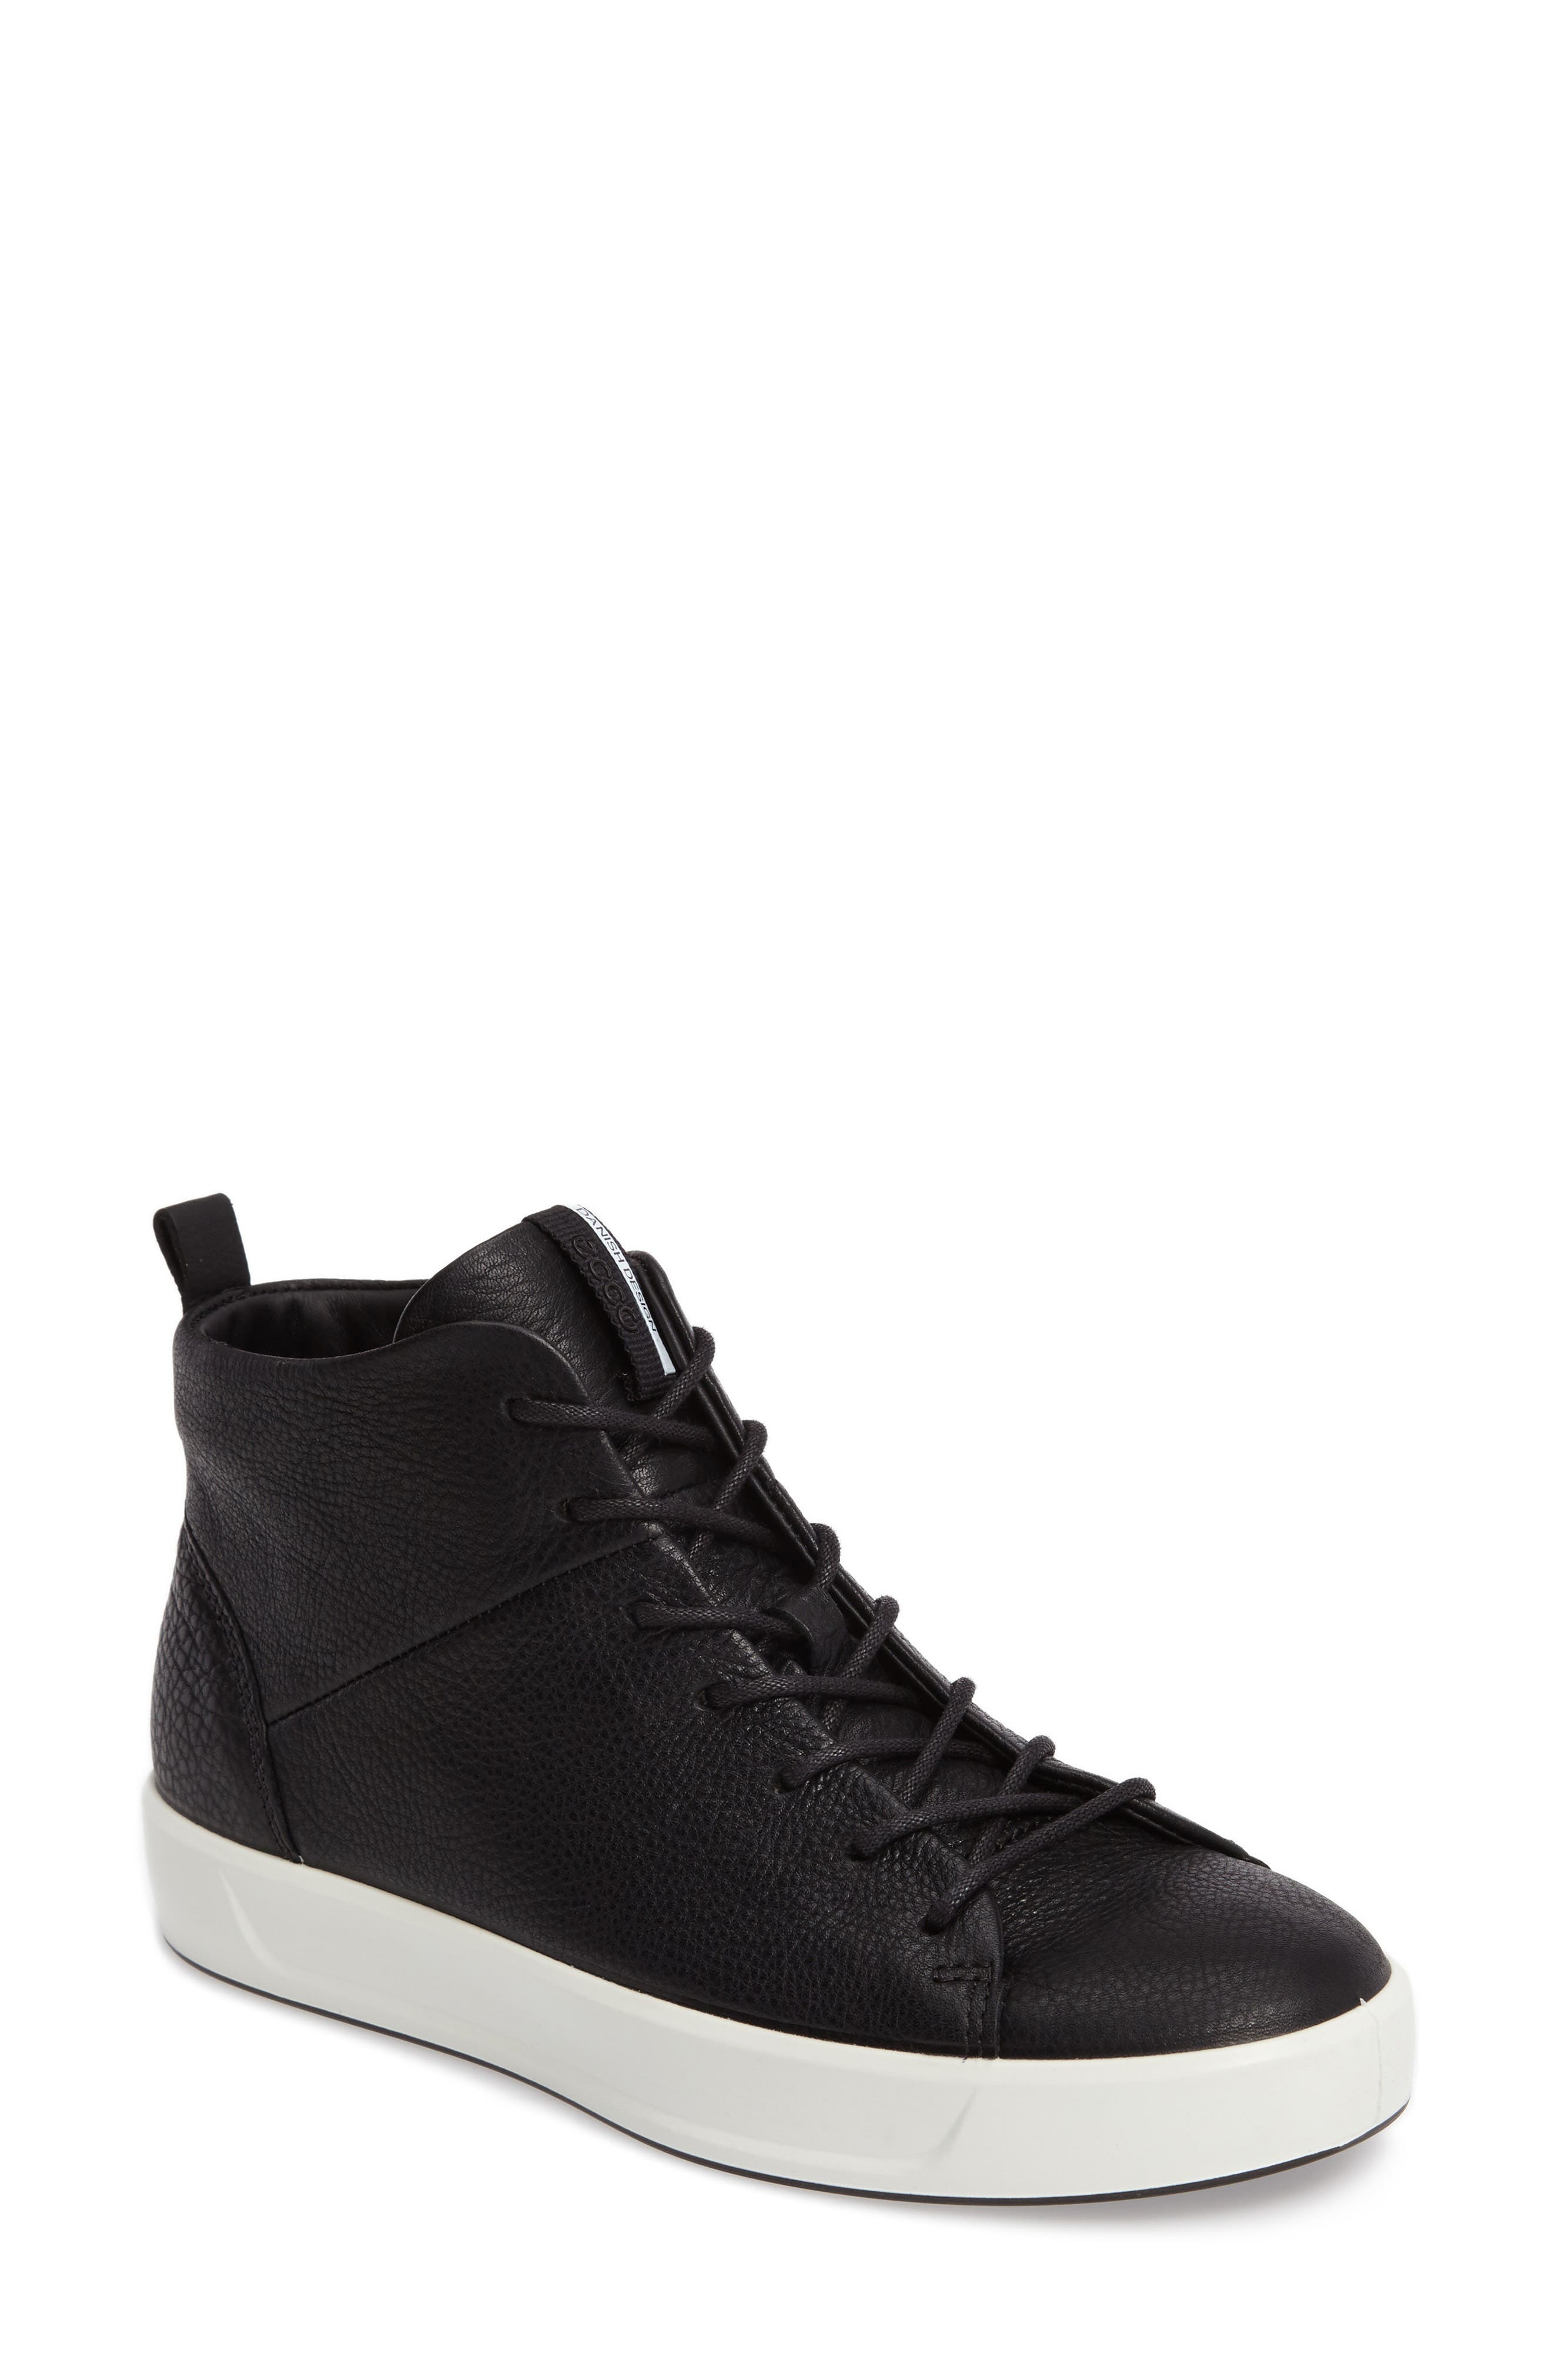 Soft 8 High Top Sneaker,                             Main thumbnail 1, color,                             Black Leather